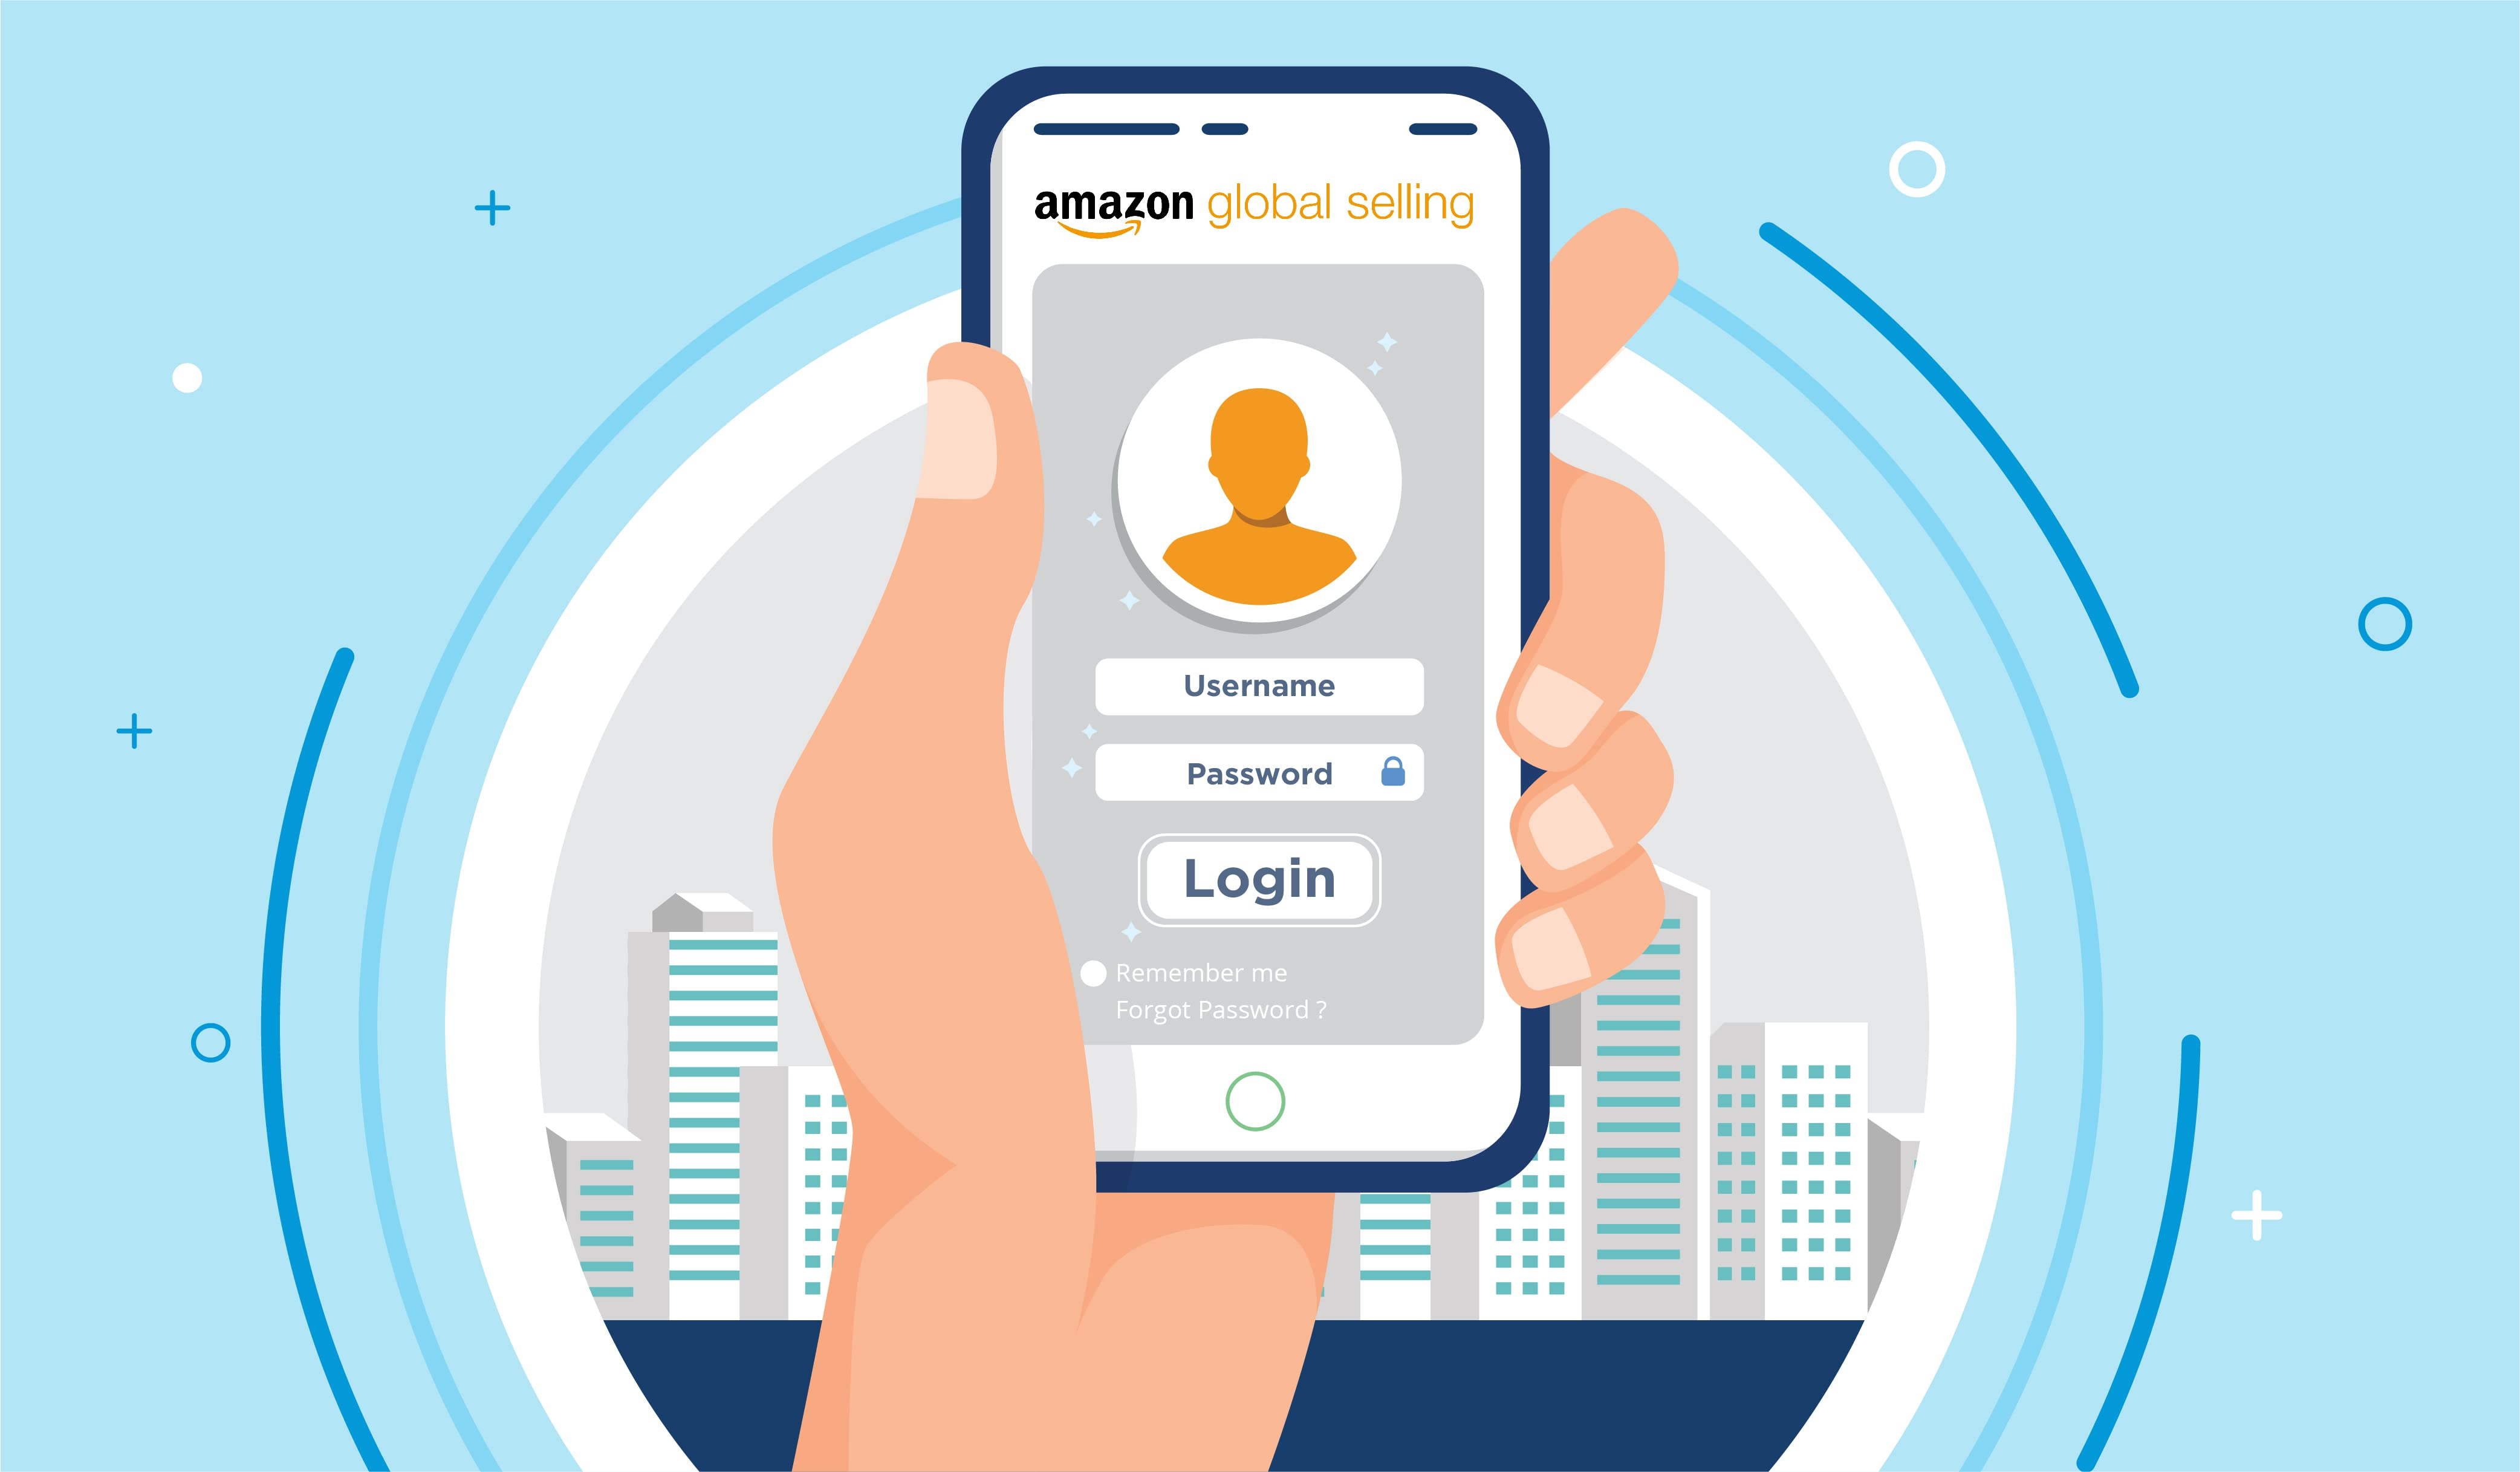 How to register as amazon global seller